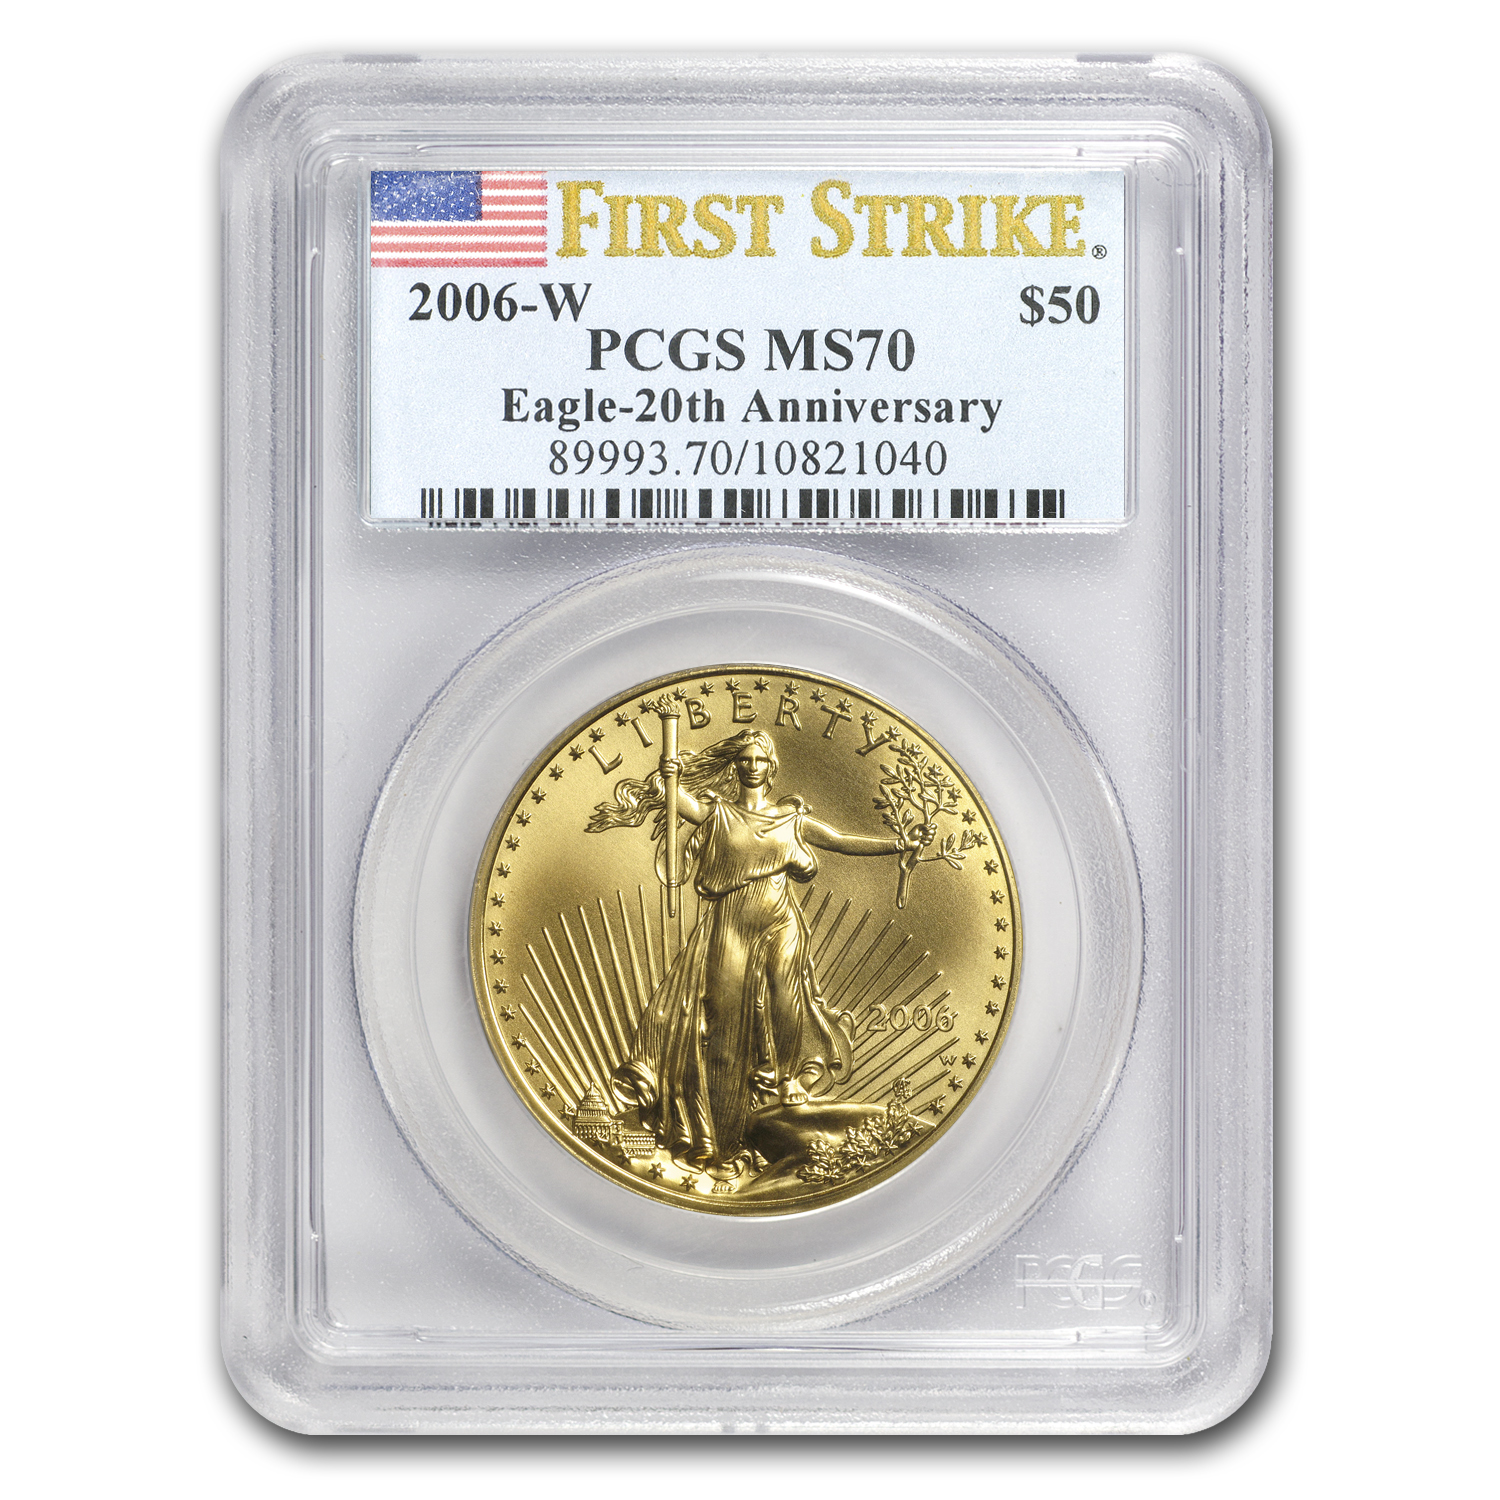 2006-W 1 oz Burnished Gold Eagle MS-70 PCGS (First Strike)